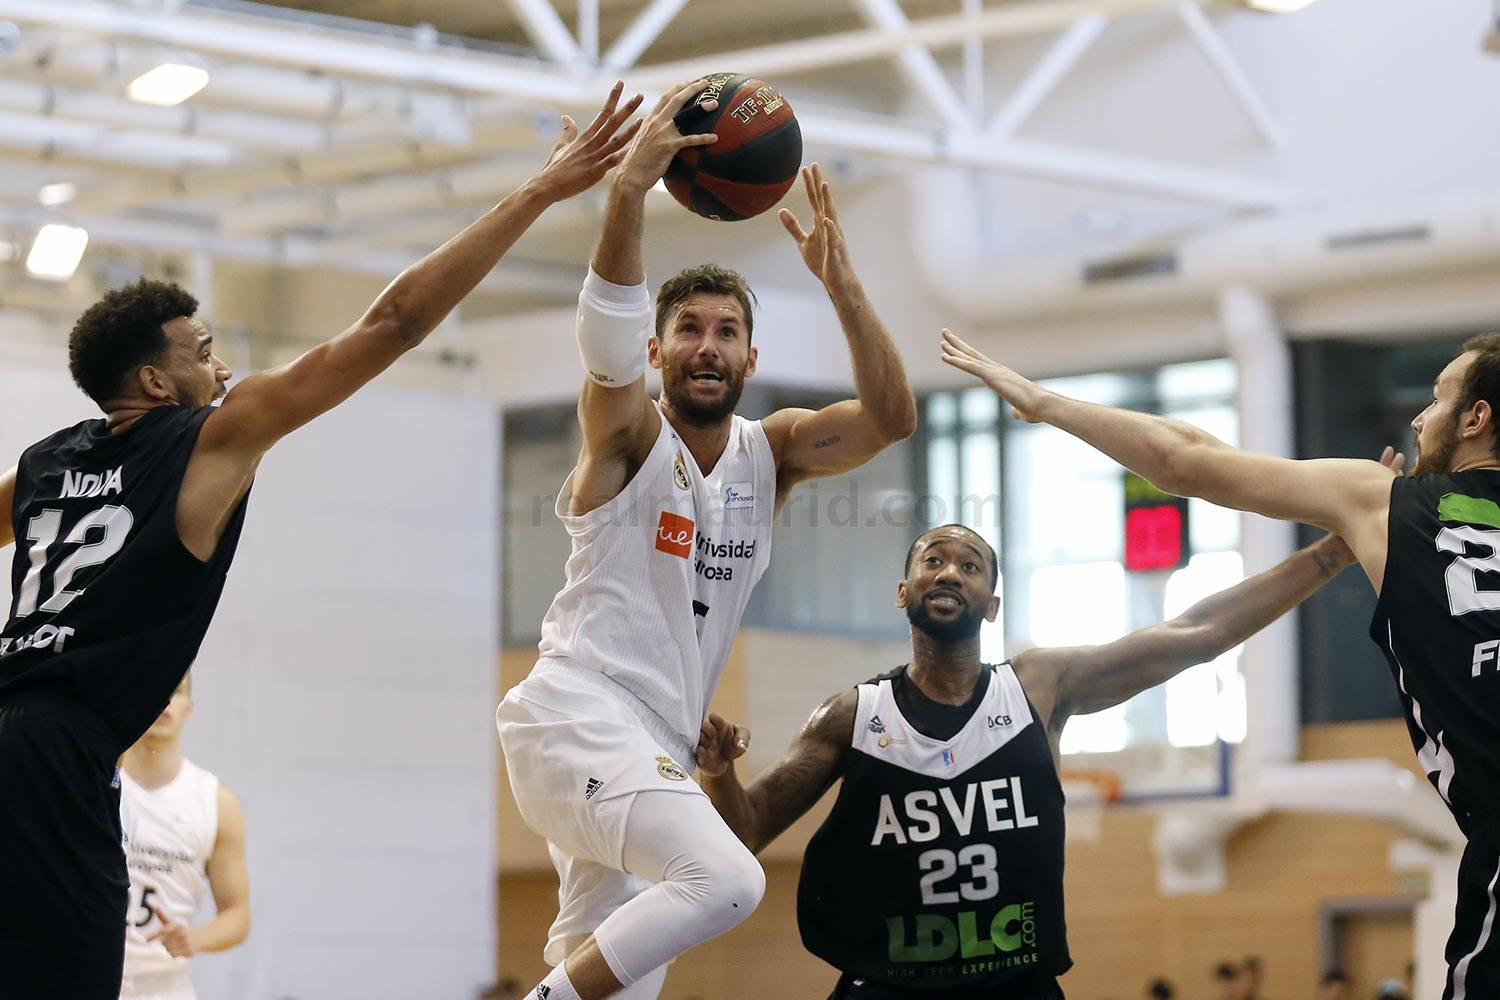 Real Madrid - Real Madrid - Asvel - 04-09-2018